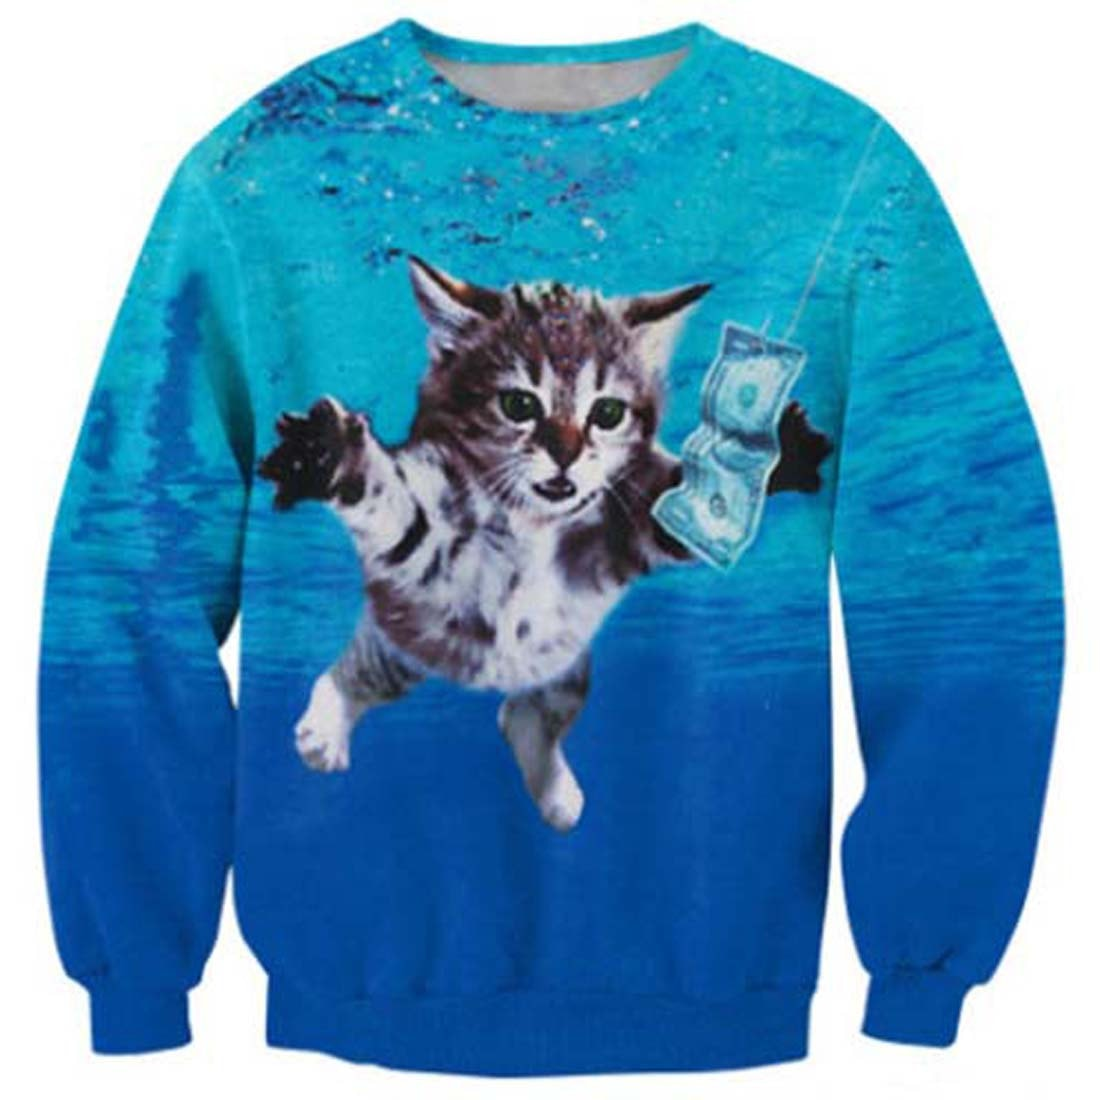 Nirvana Nevermind Album Kitty Cat Parody Print Sweater